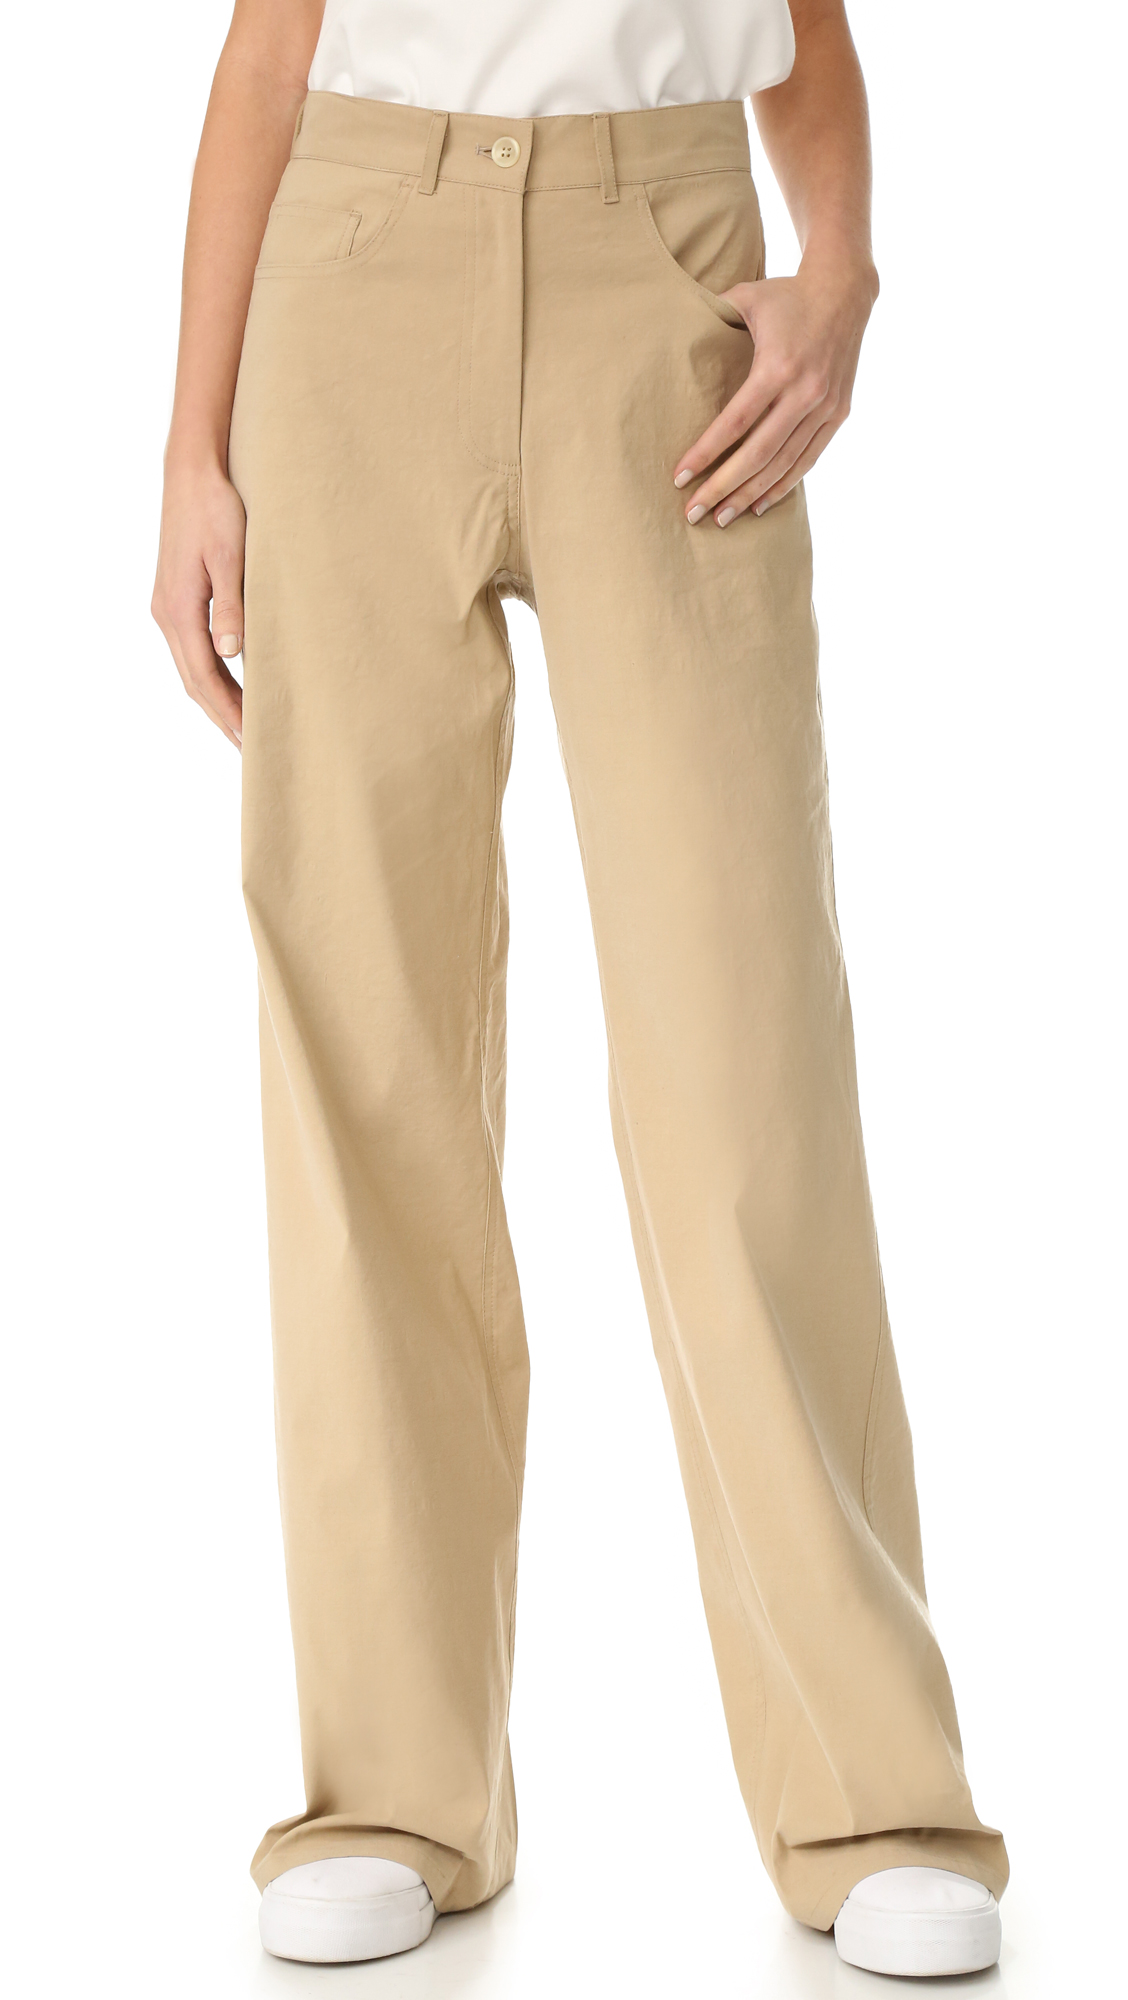 Crisp Sea pants in a high waisted, wide leg profile. 5 pocket styling. Button closure and zip fly. Fabric: Twil. 45% viscose/30% linen/20% cotton/5% elastane. Dry clean. Made in the USA. Measurements Rise: 11.75in / 30cm Inseam: 34.75in / 88cm